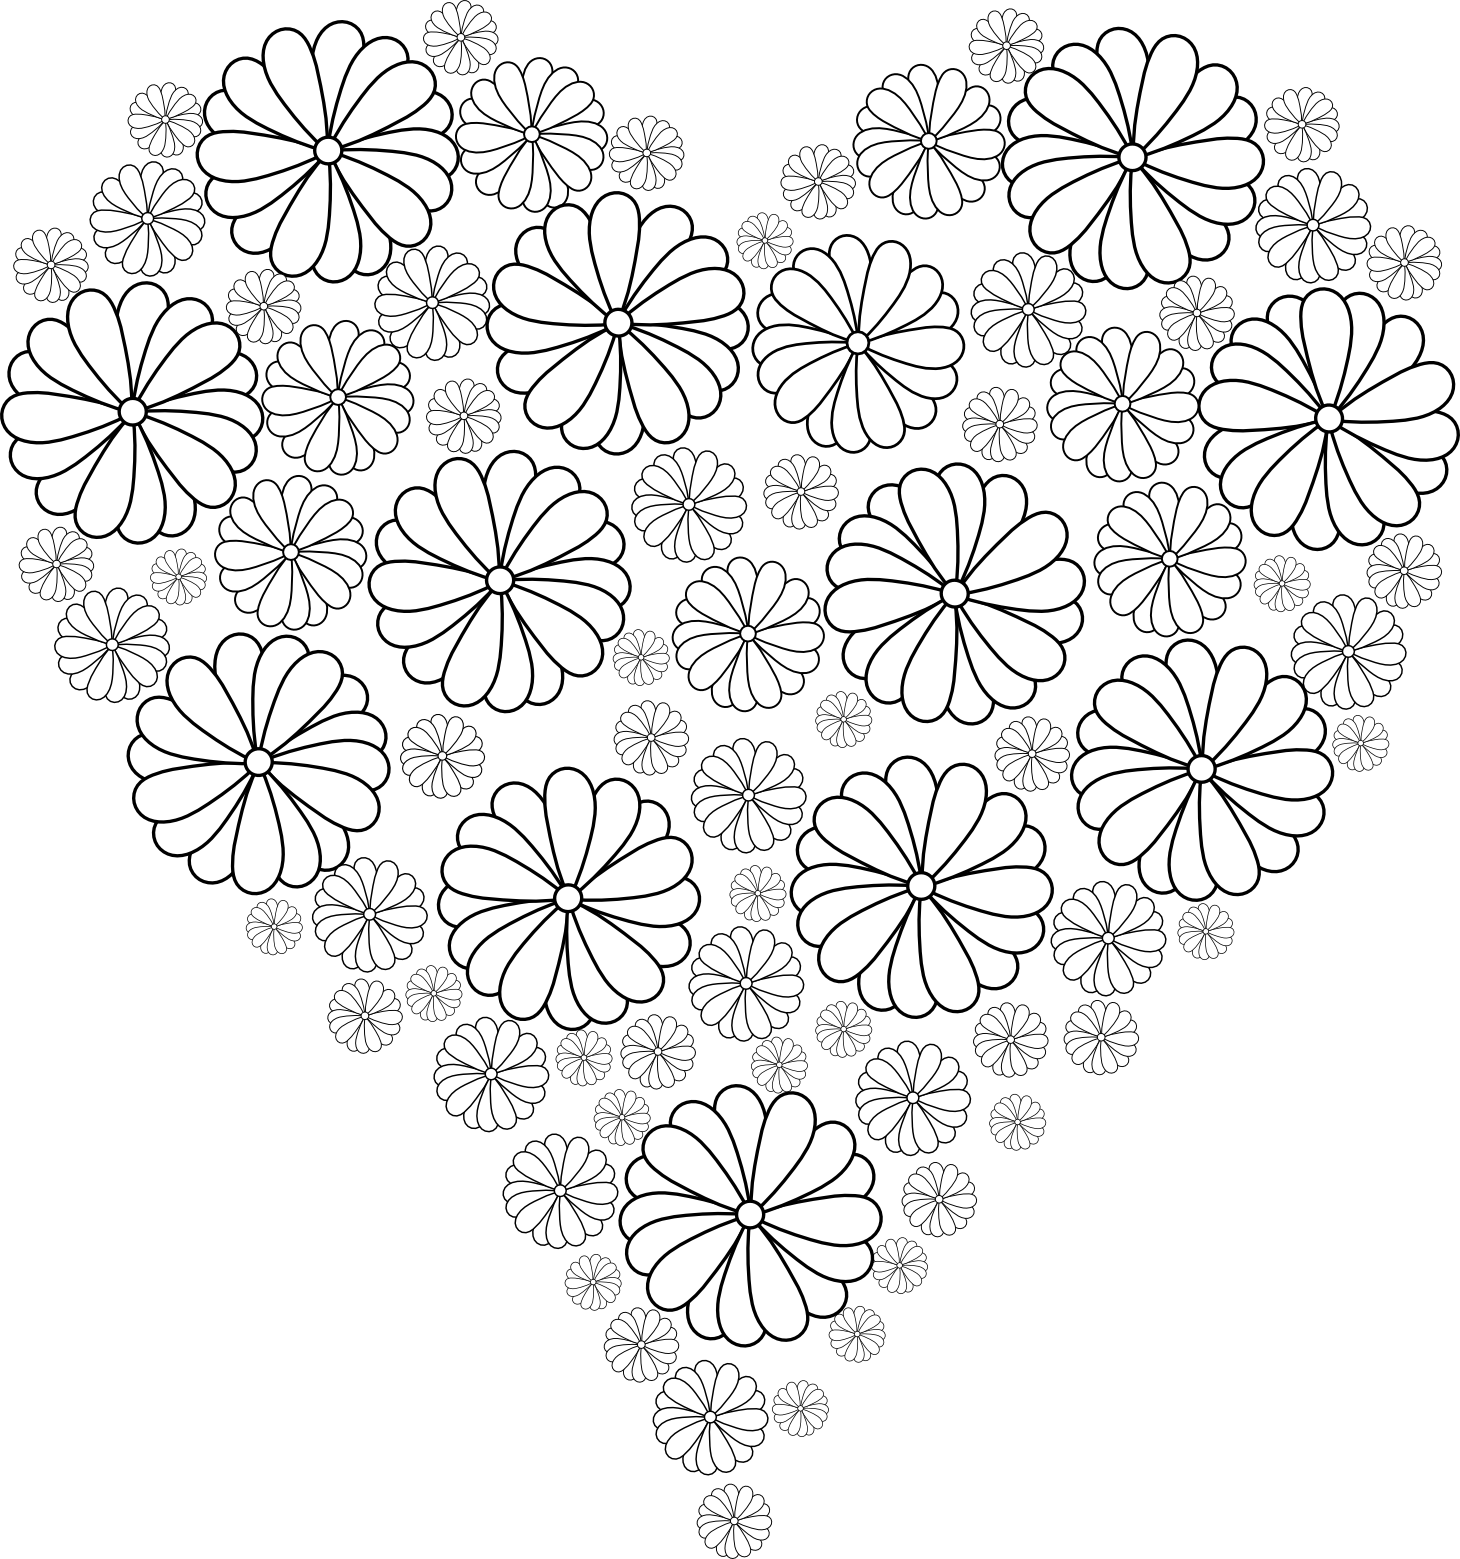 Adulting coloring pages ~ Coeur en fleurs | Mandala | Pinterest | Coloriage, Dessin ...